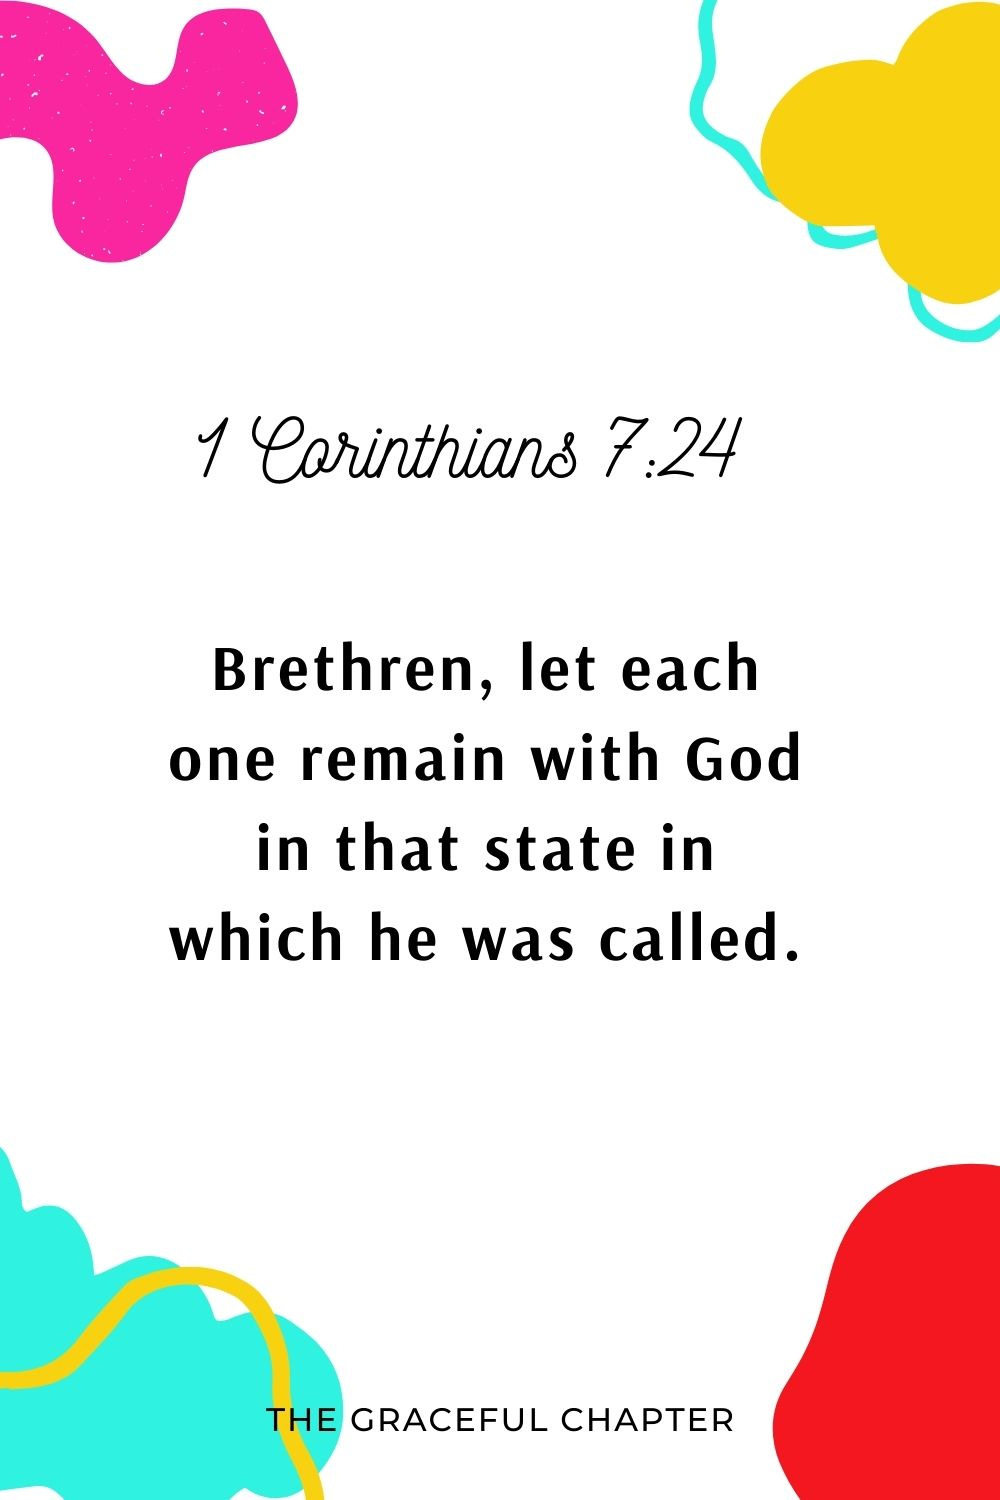 Brethren, let each one remain with God in that state in which he was called. 1 Corinthians 7:24